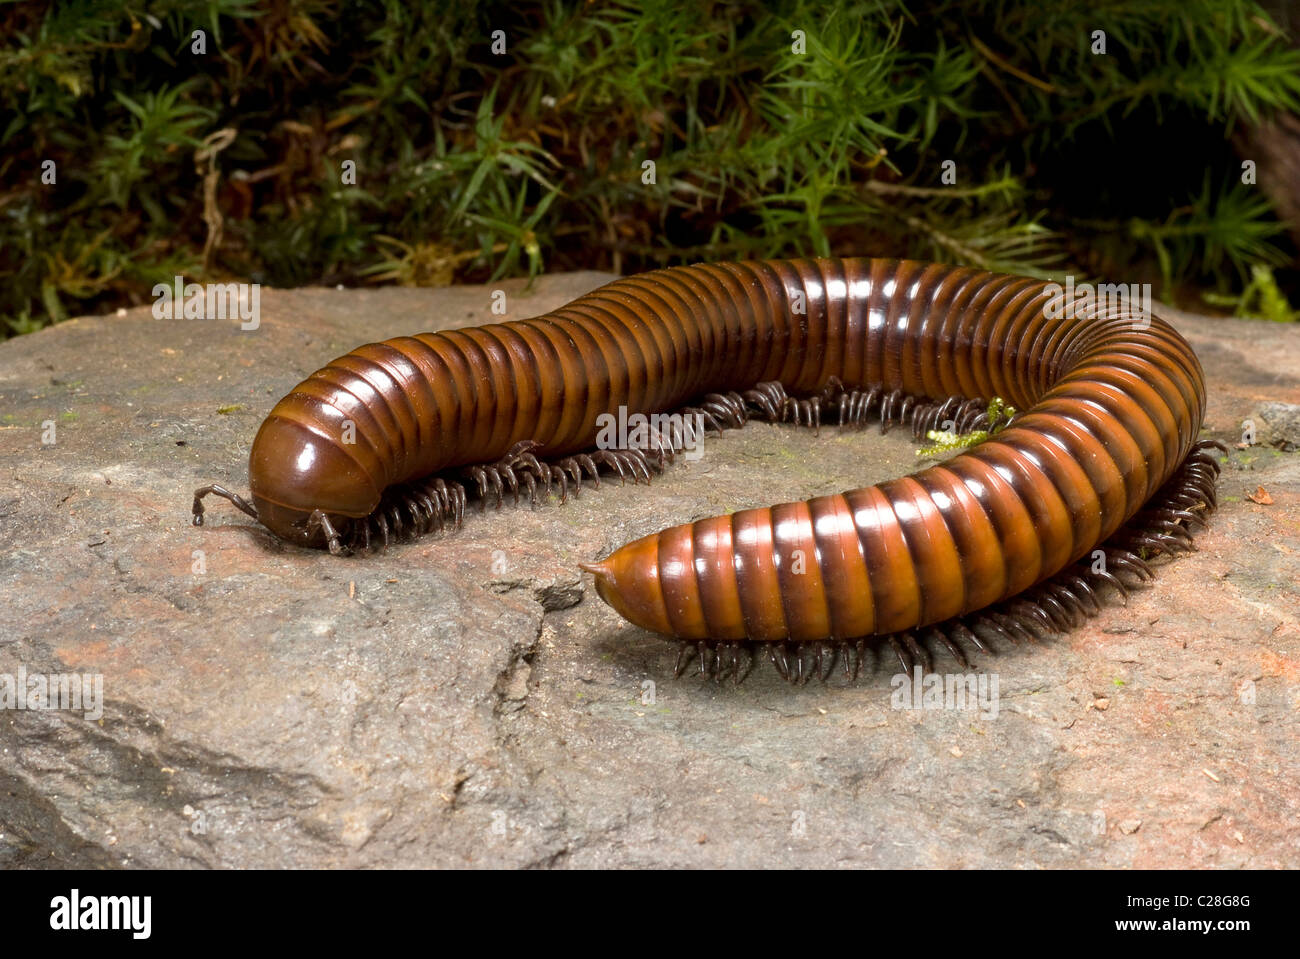 Millipede (Thyropygus ligulus) on a rock. - Stock Image